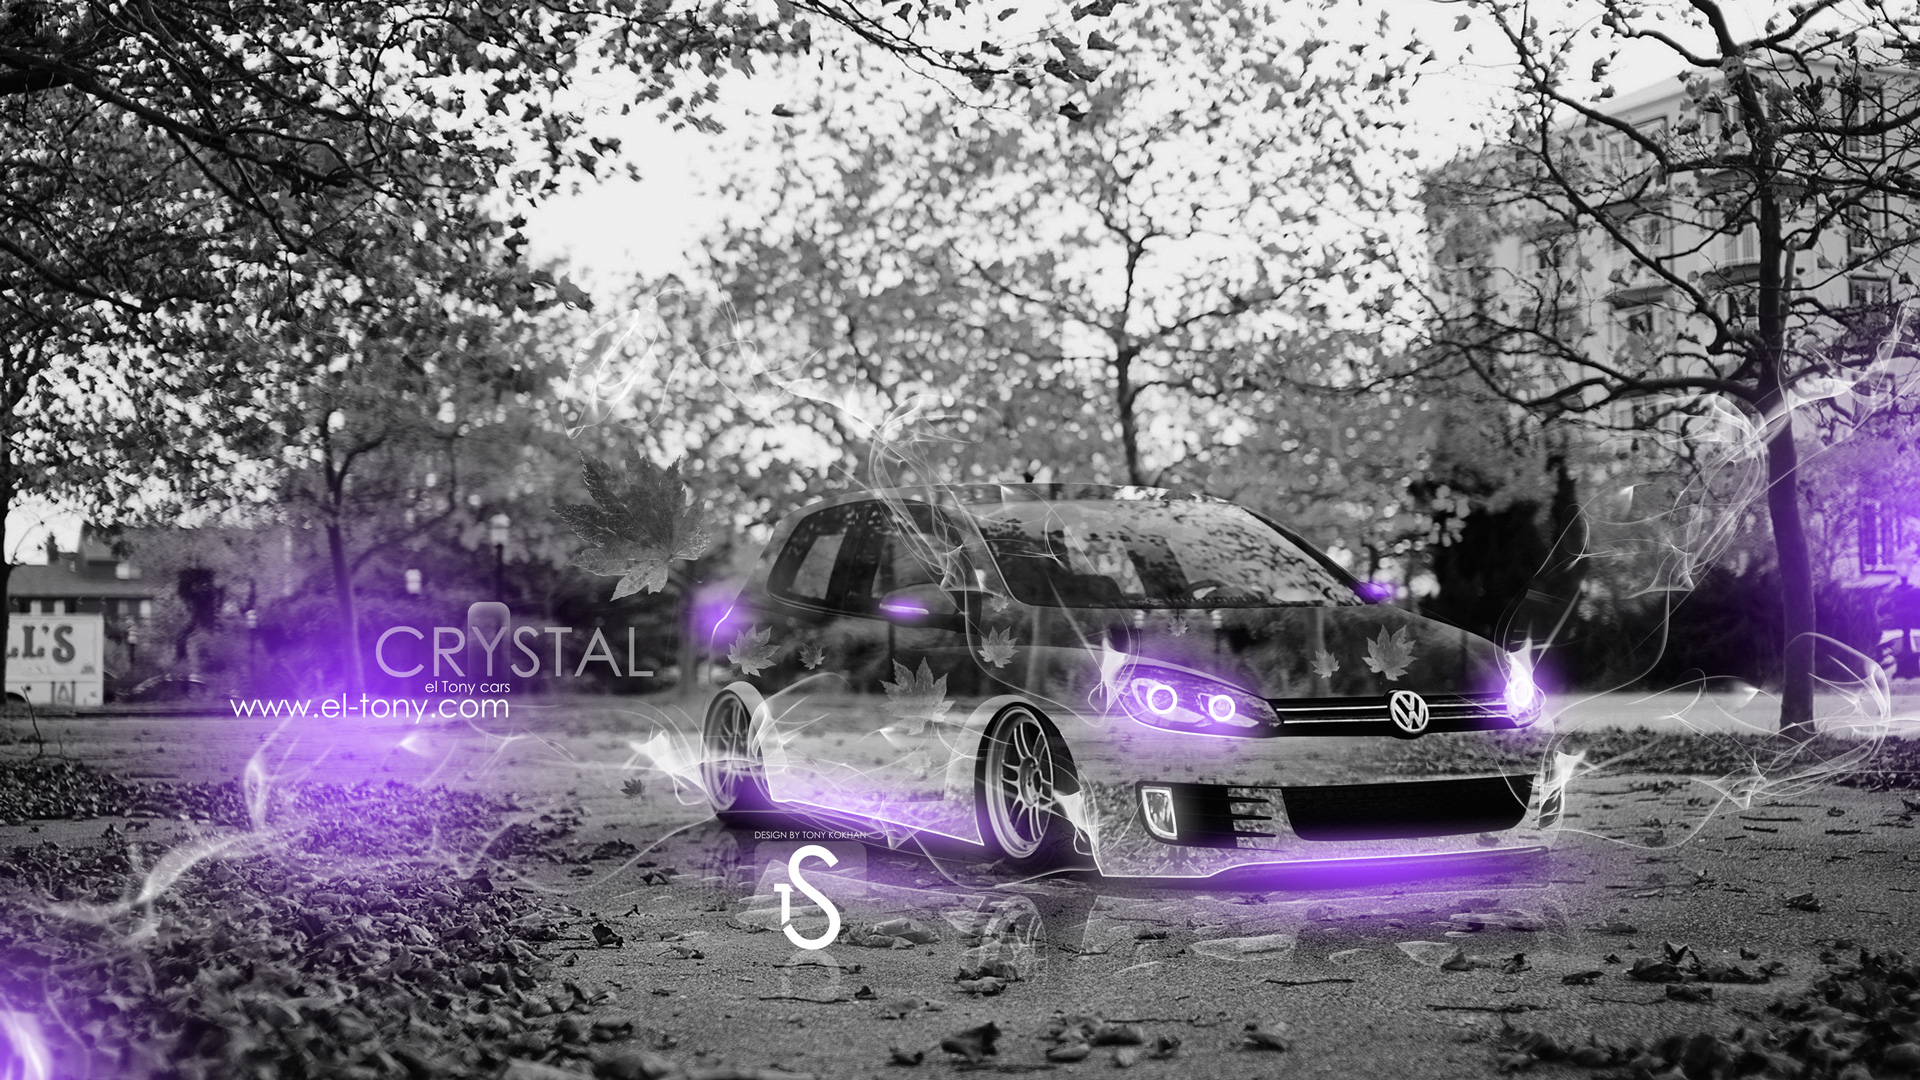 Beau Volkswagen Golf Autumn Crystal Car 2013 Violet Neon